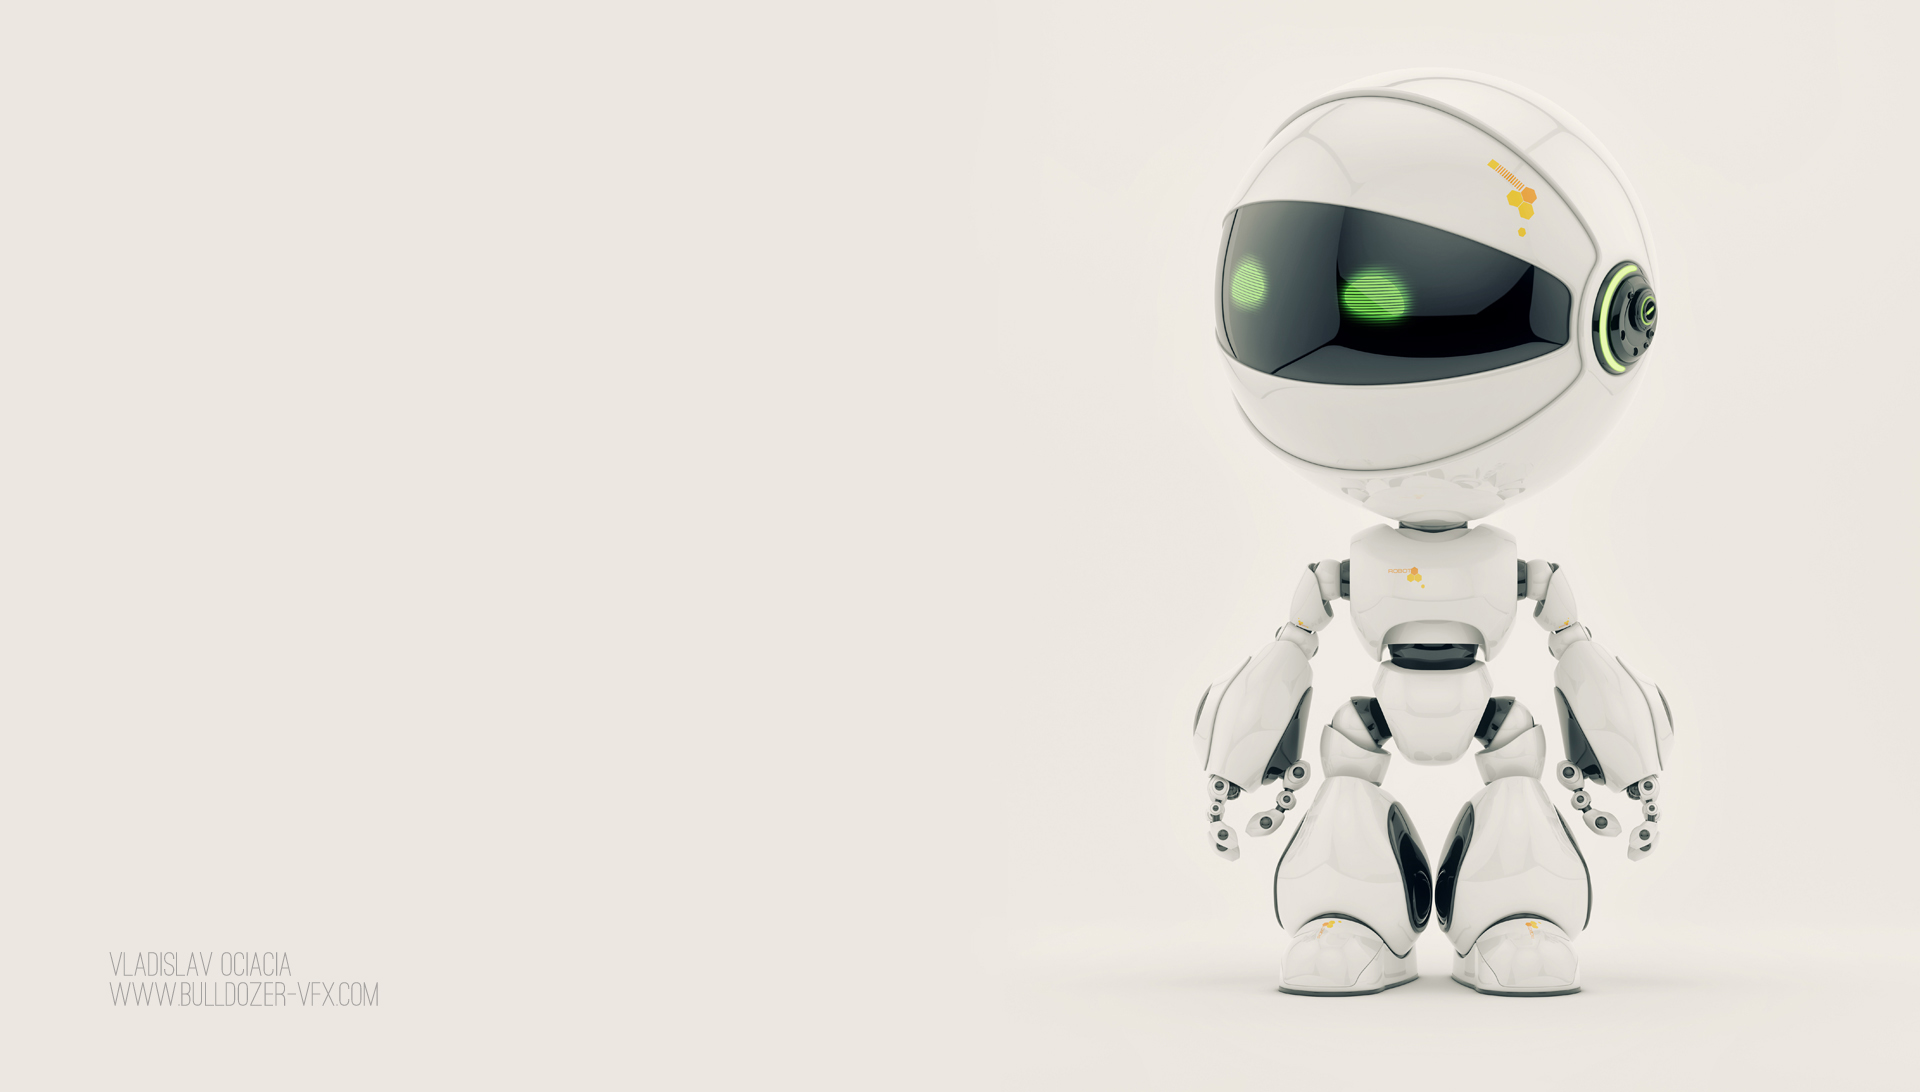 Cute Robot HD Wallpapers 15441   Amazing Wallpaperz 1920x1092